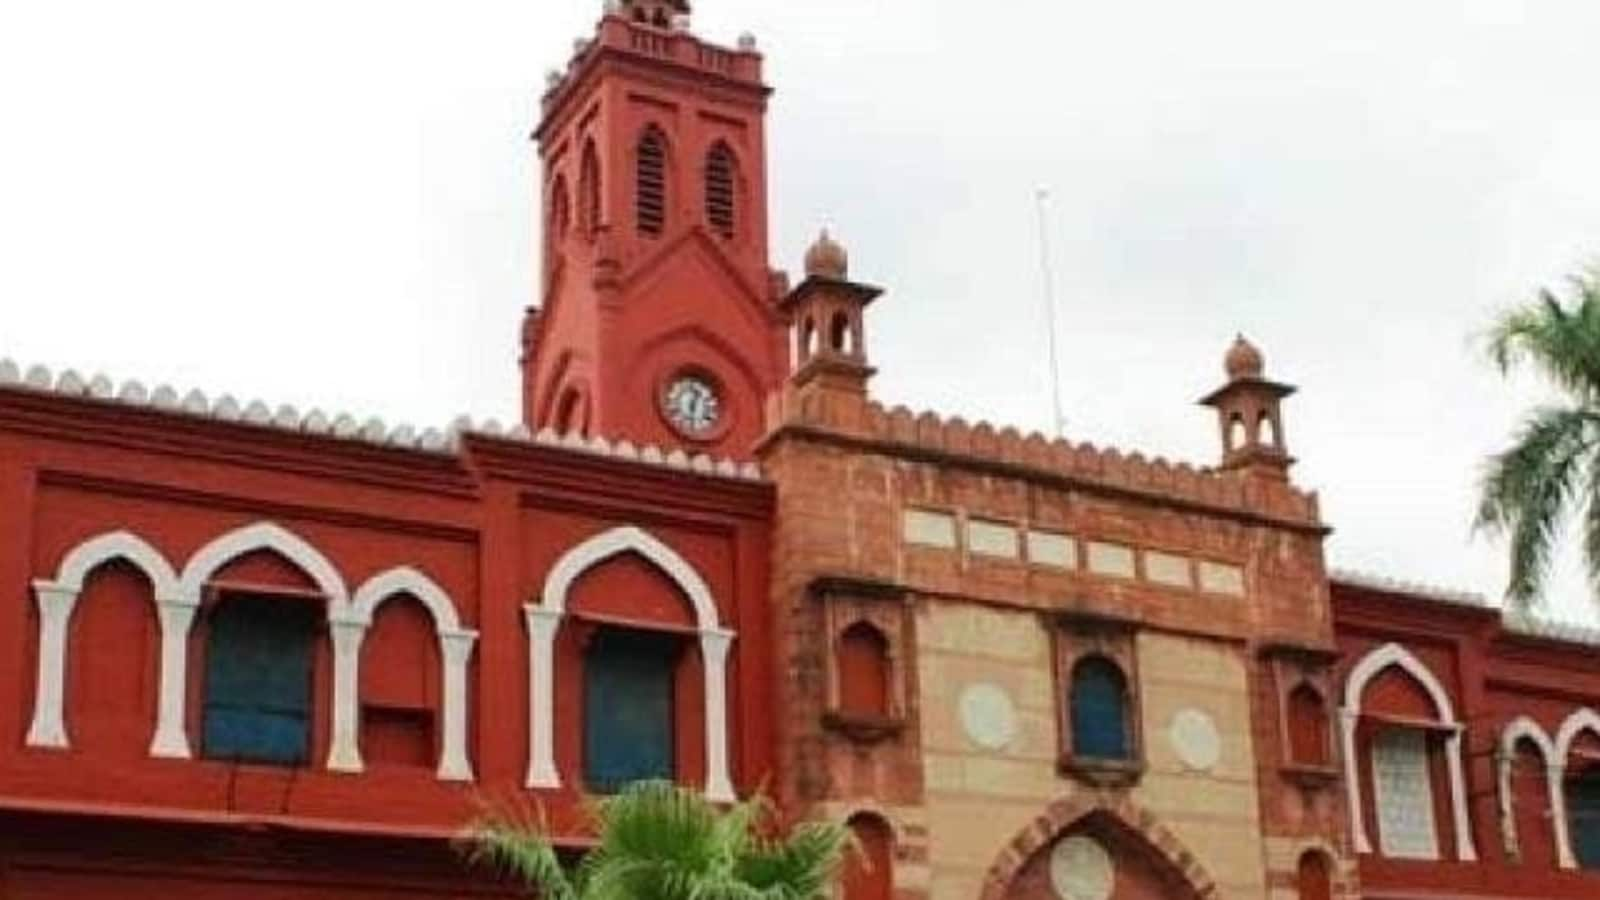 Sir Syed Day 2021: AMU marks 204th birth anniversary of its founder